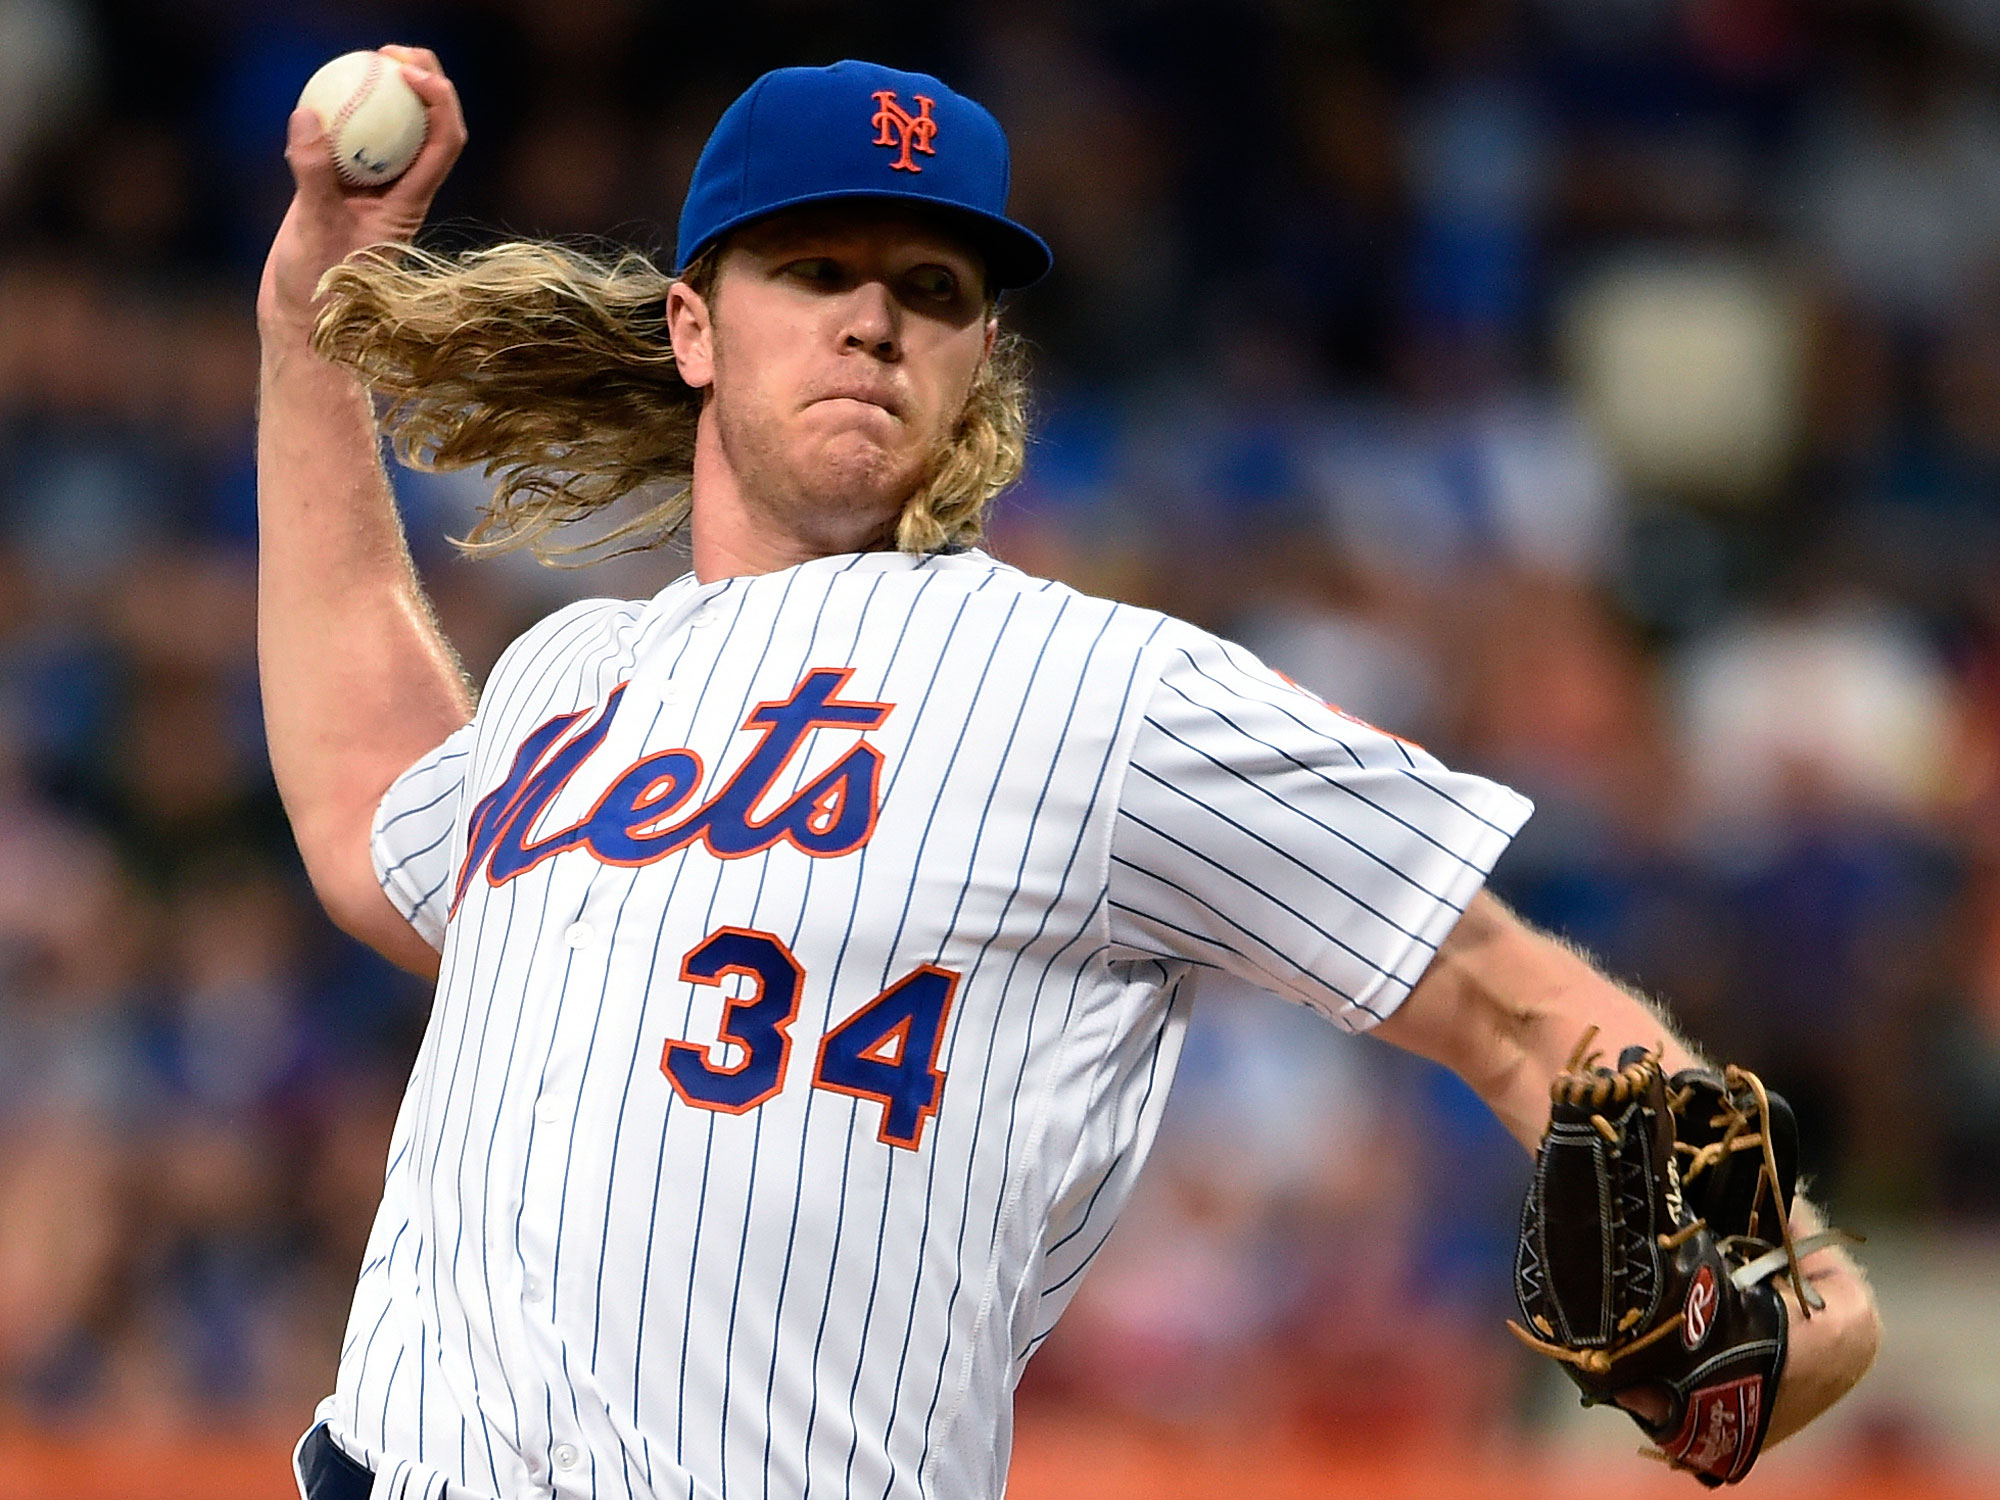 Noah Syndergaard, New York Mets